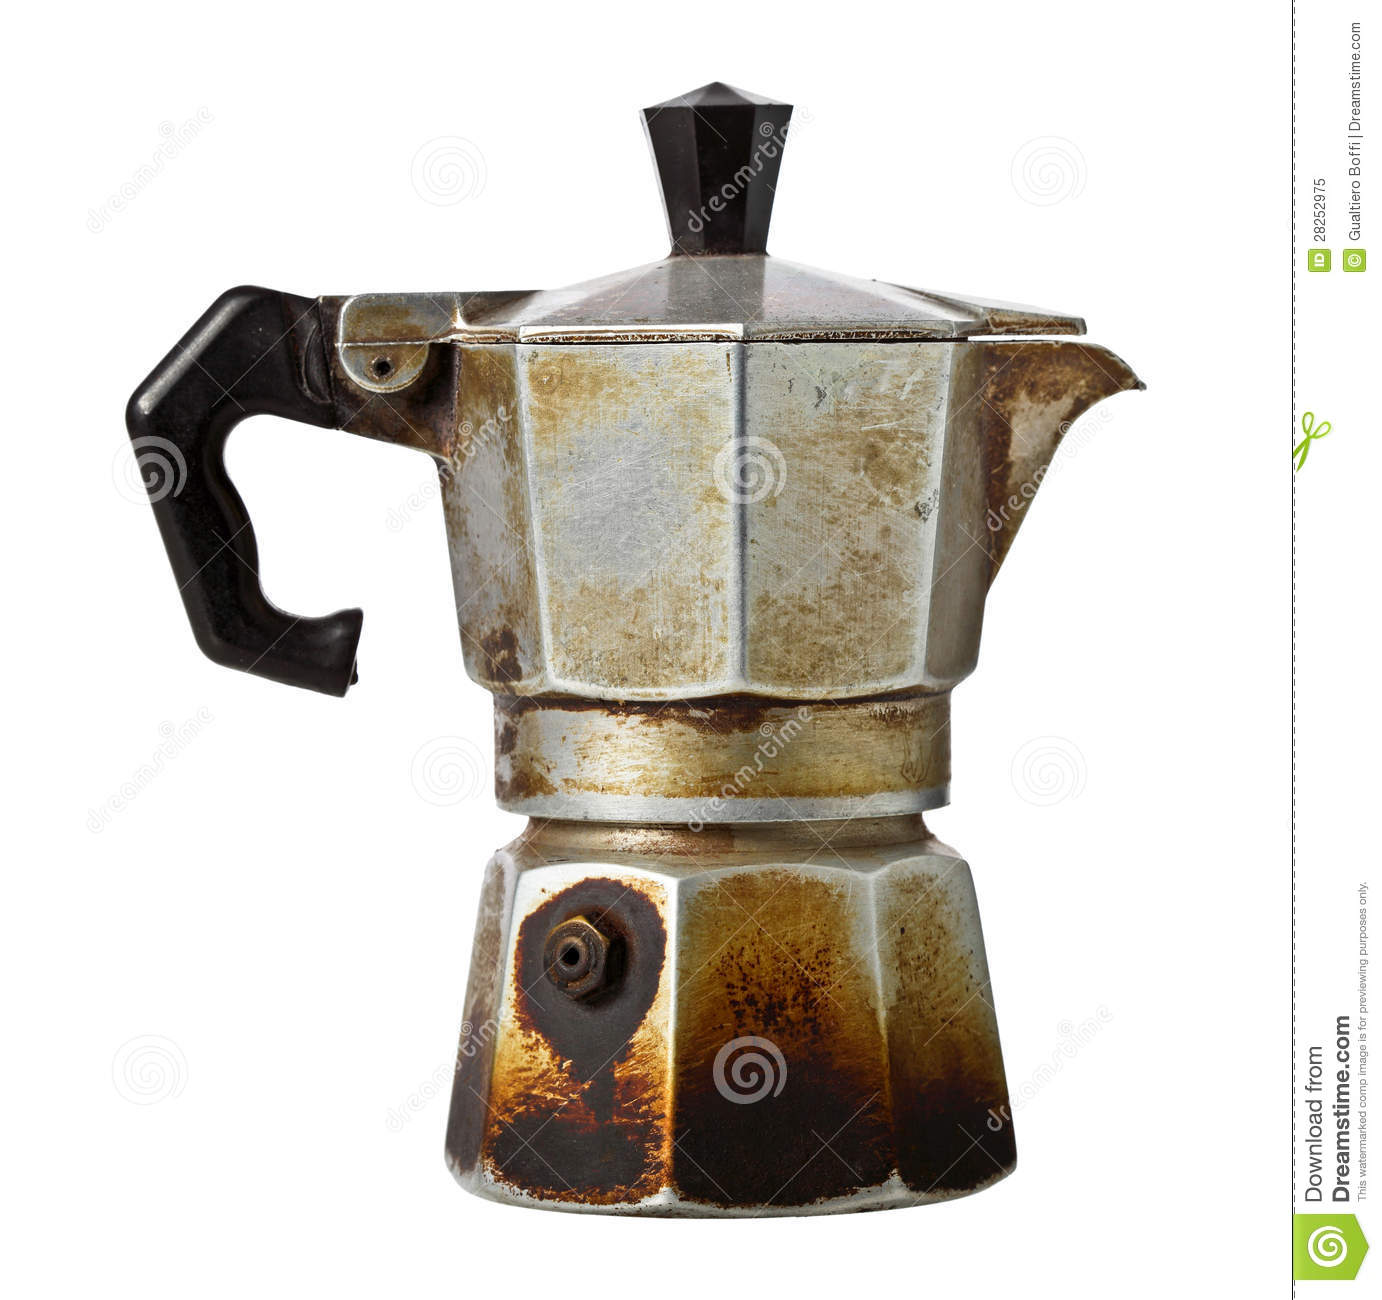 Coffee Maker Royalty Free Stock Photo - Image: 28252975